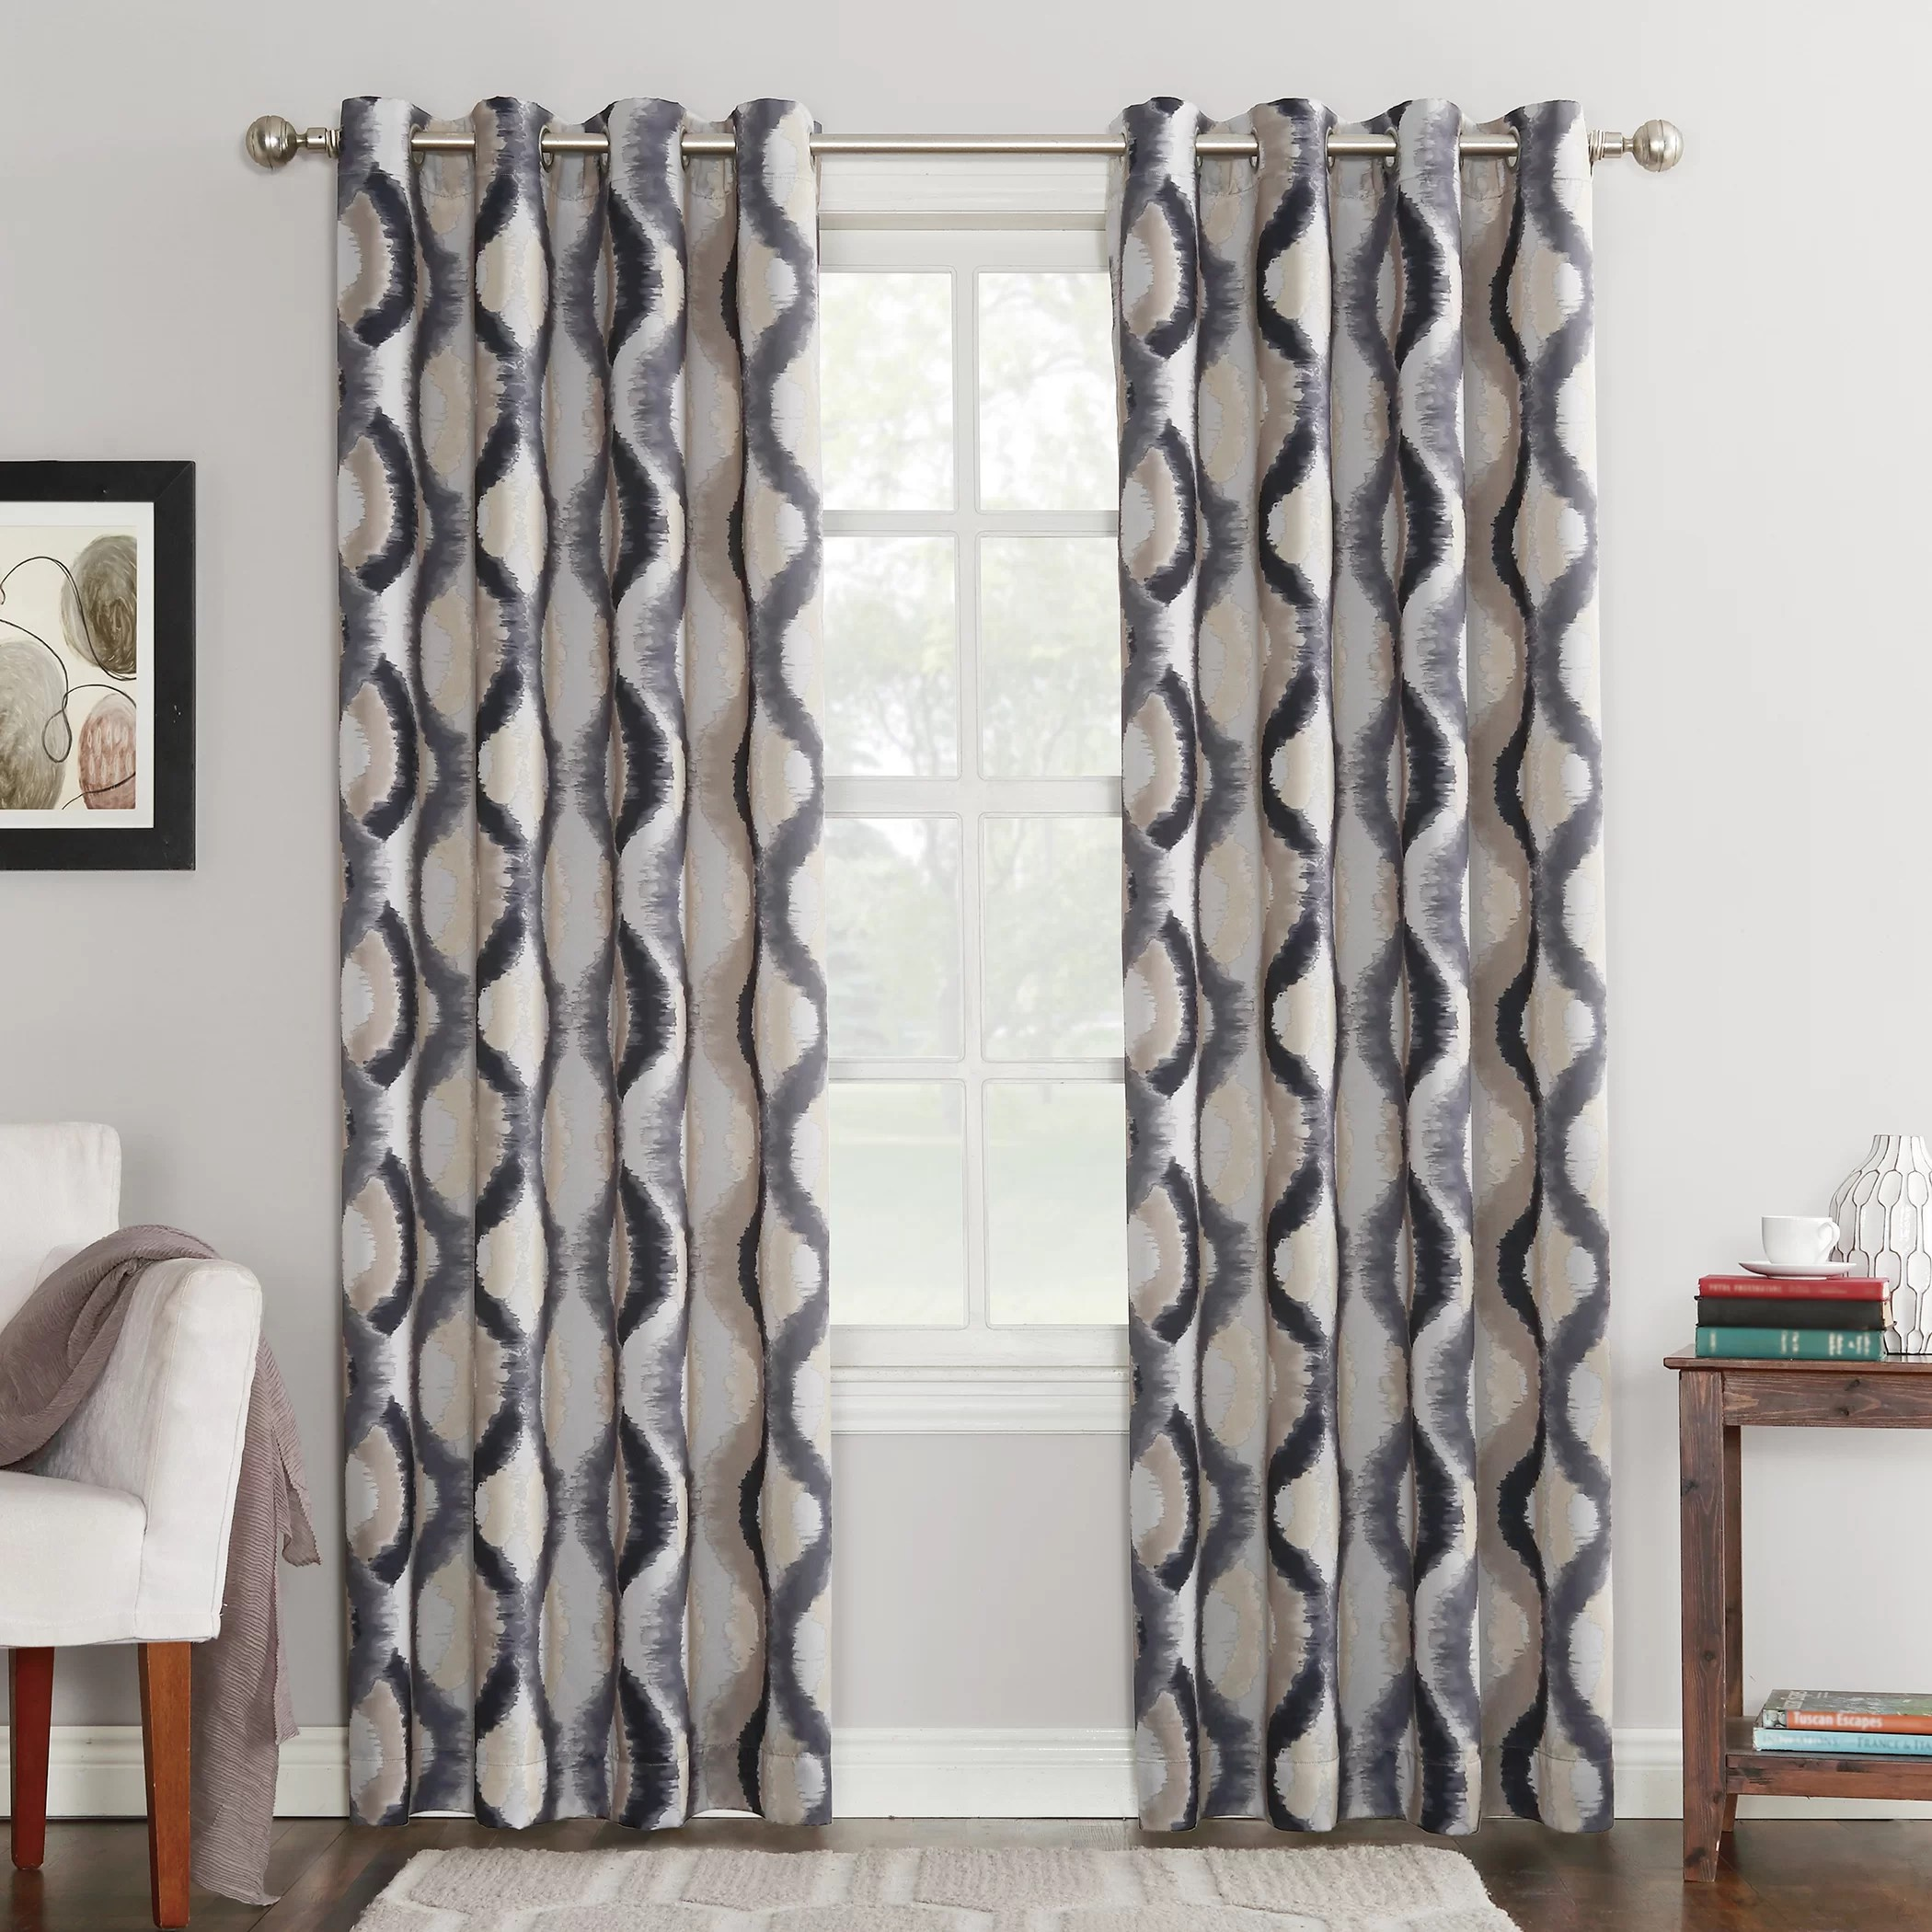 36 Inch Room Darkening Curtains Antigo Geometric Room Darkening Grommet Single Curtain Panel